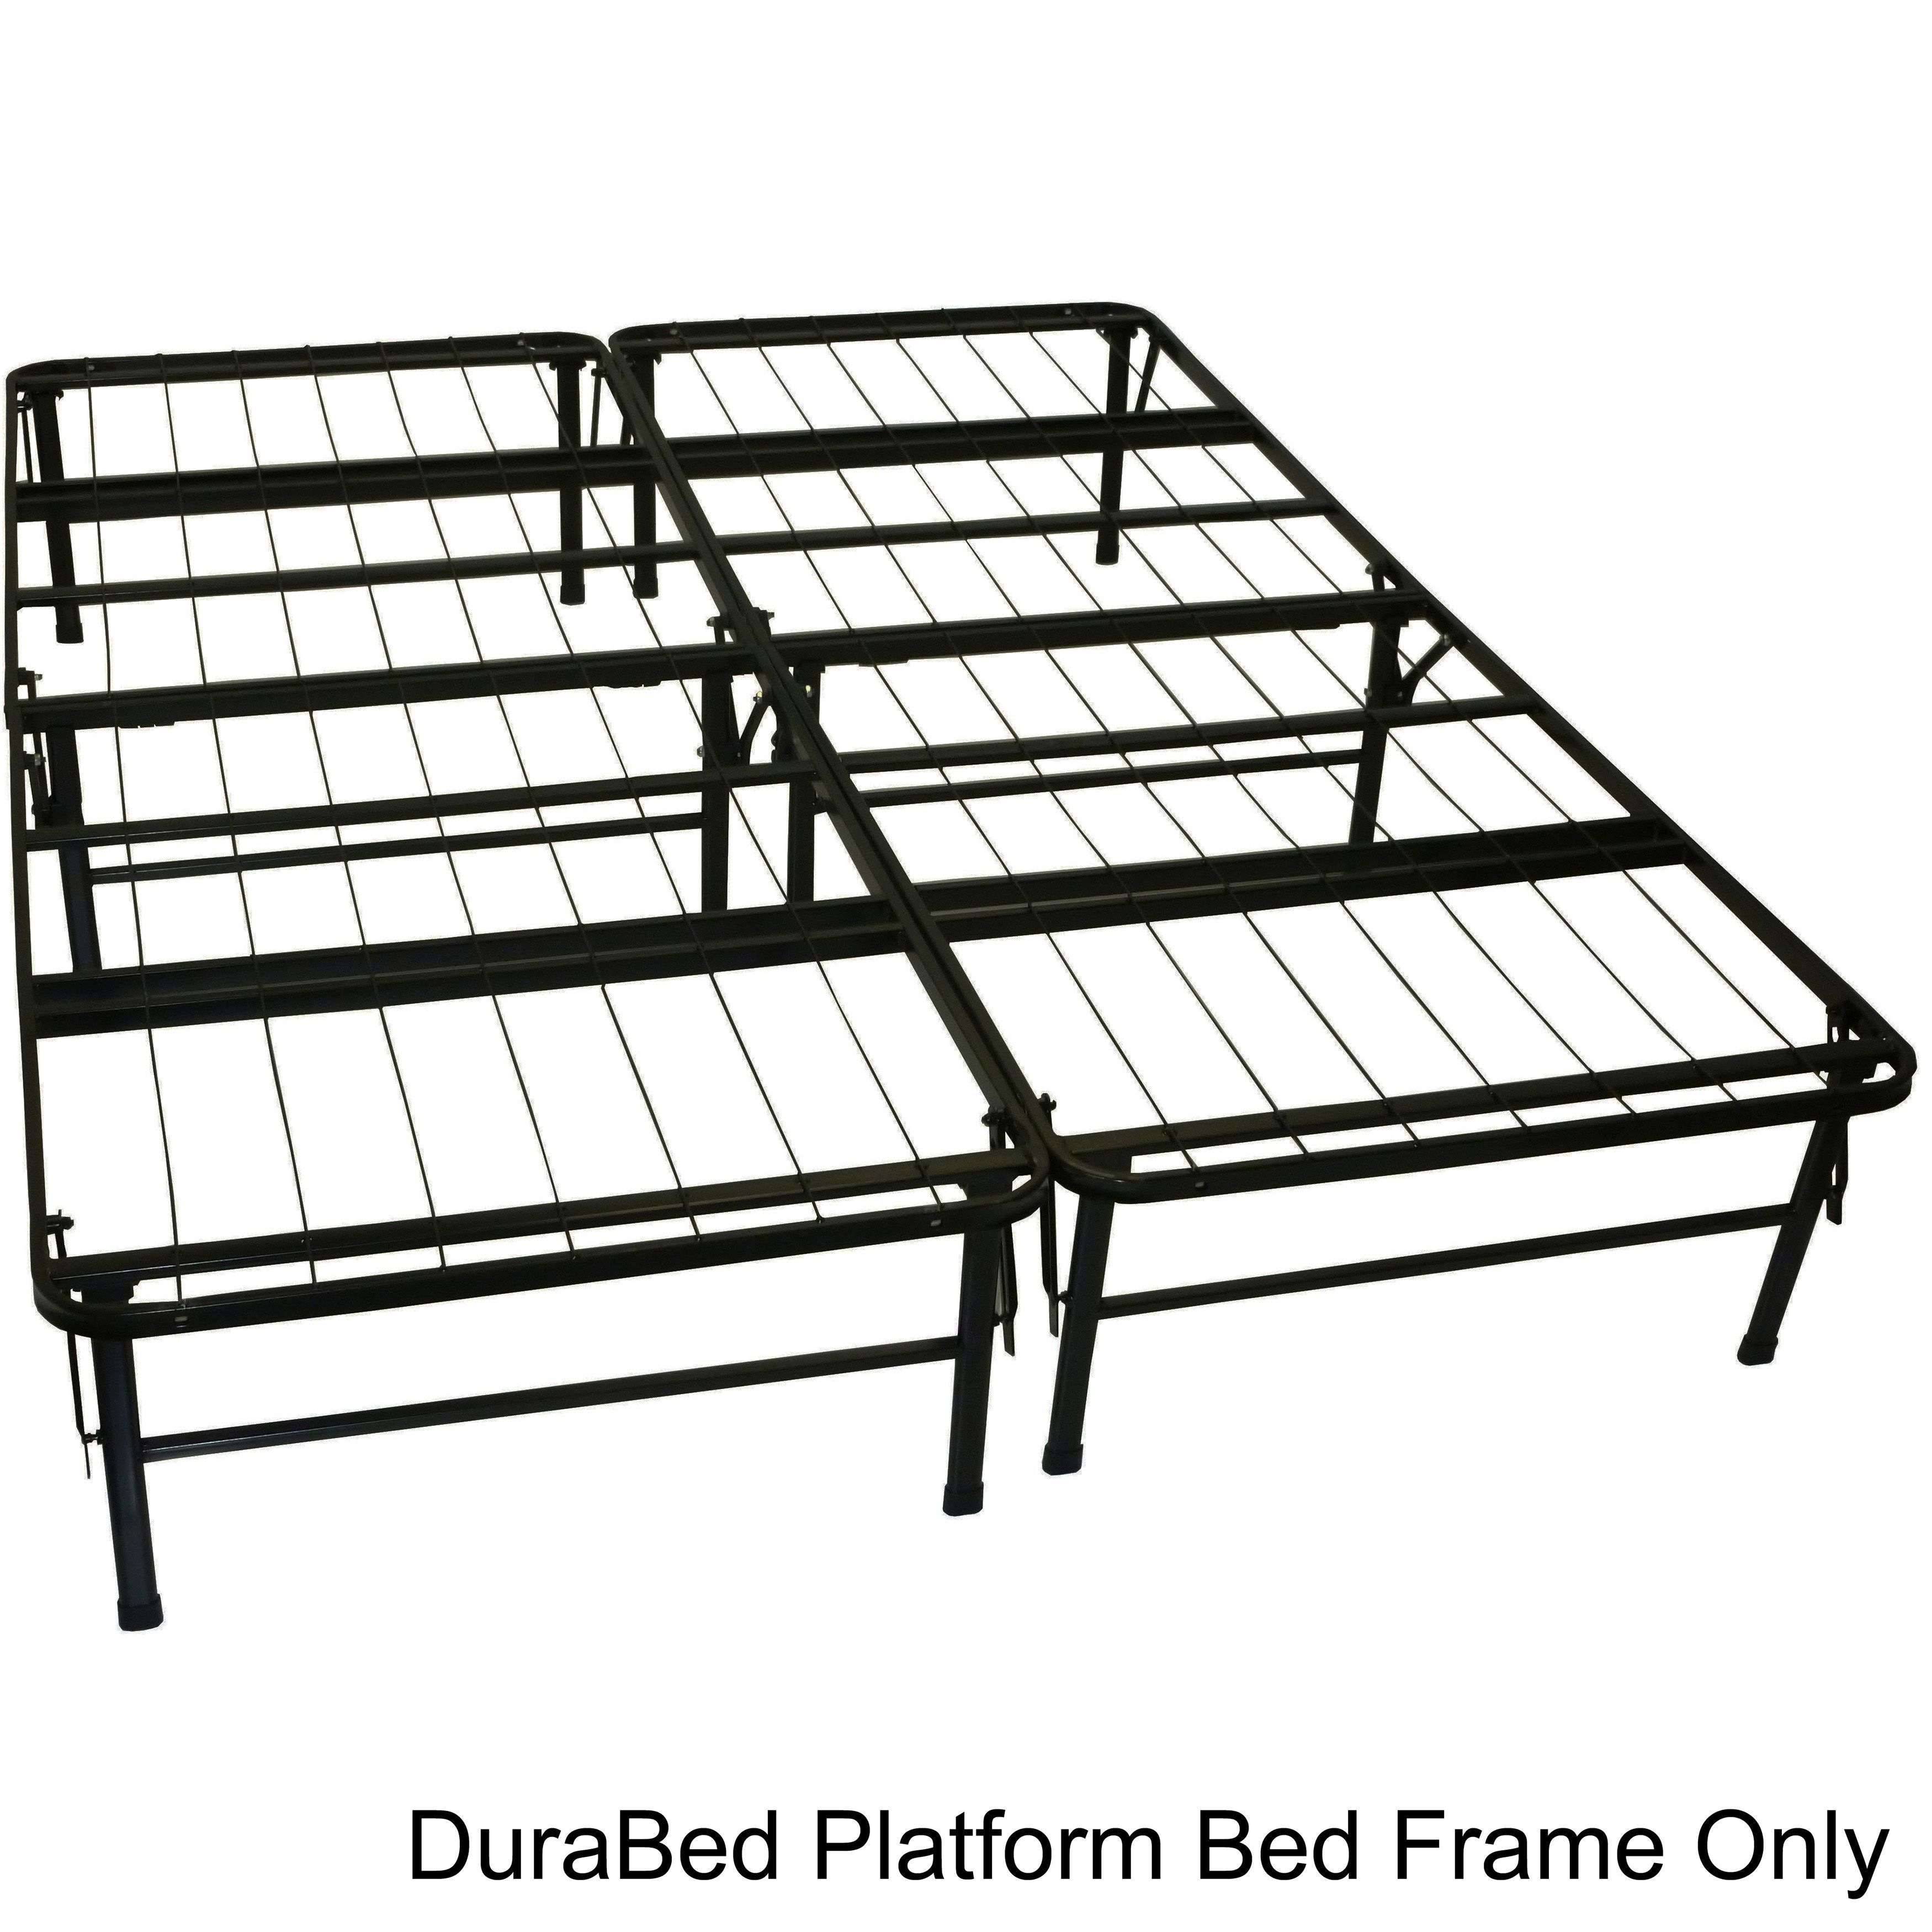 The DuraBed Platform Bed, with its heavy-duty steel wire mesh ...